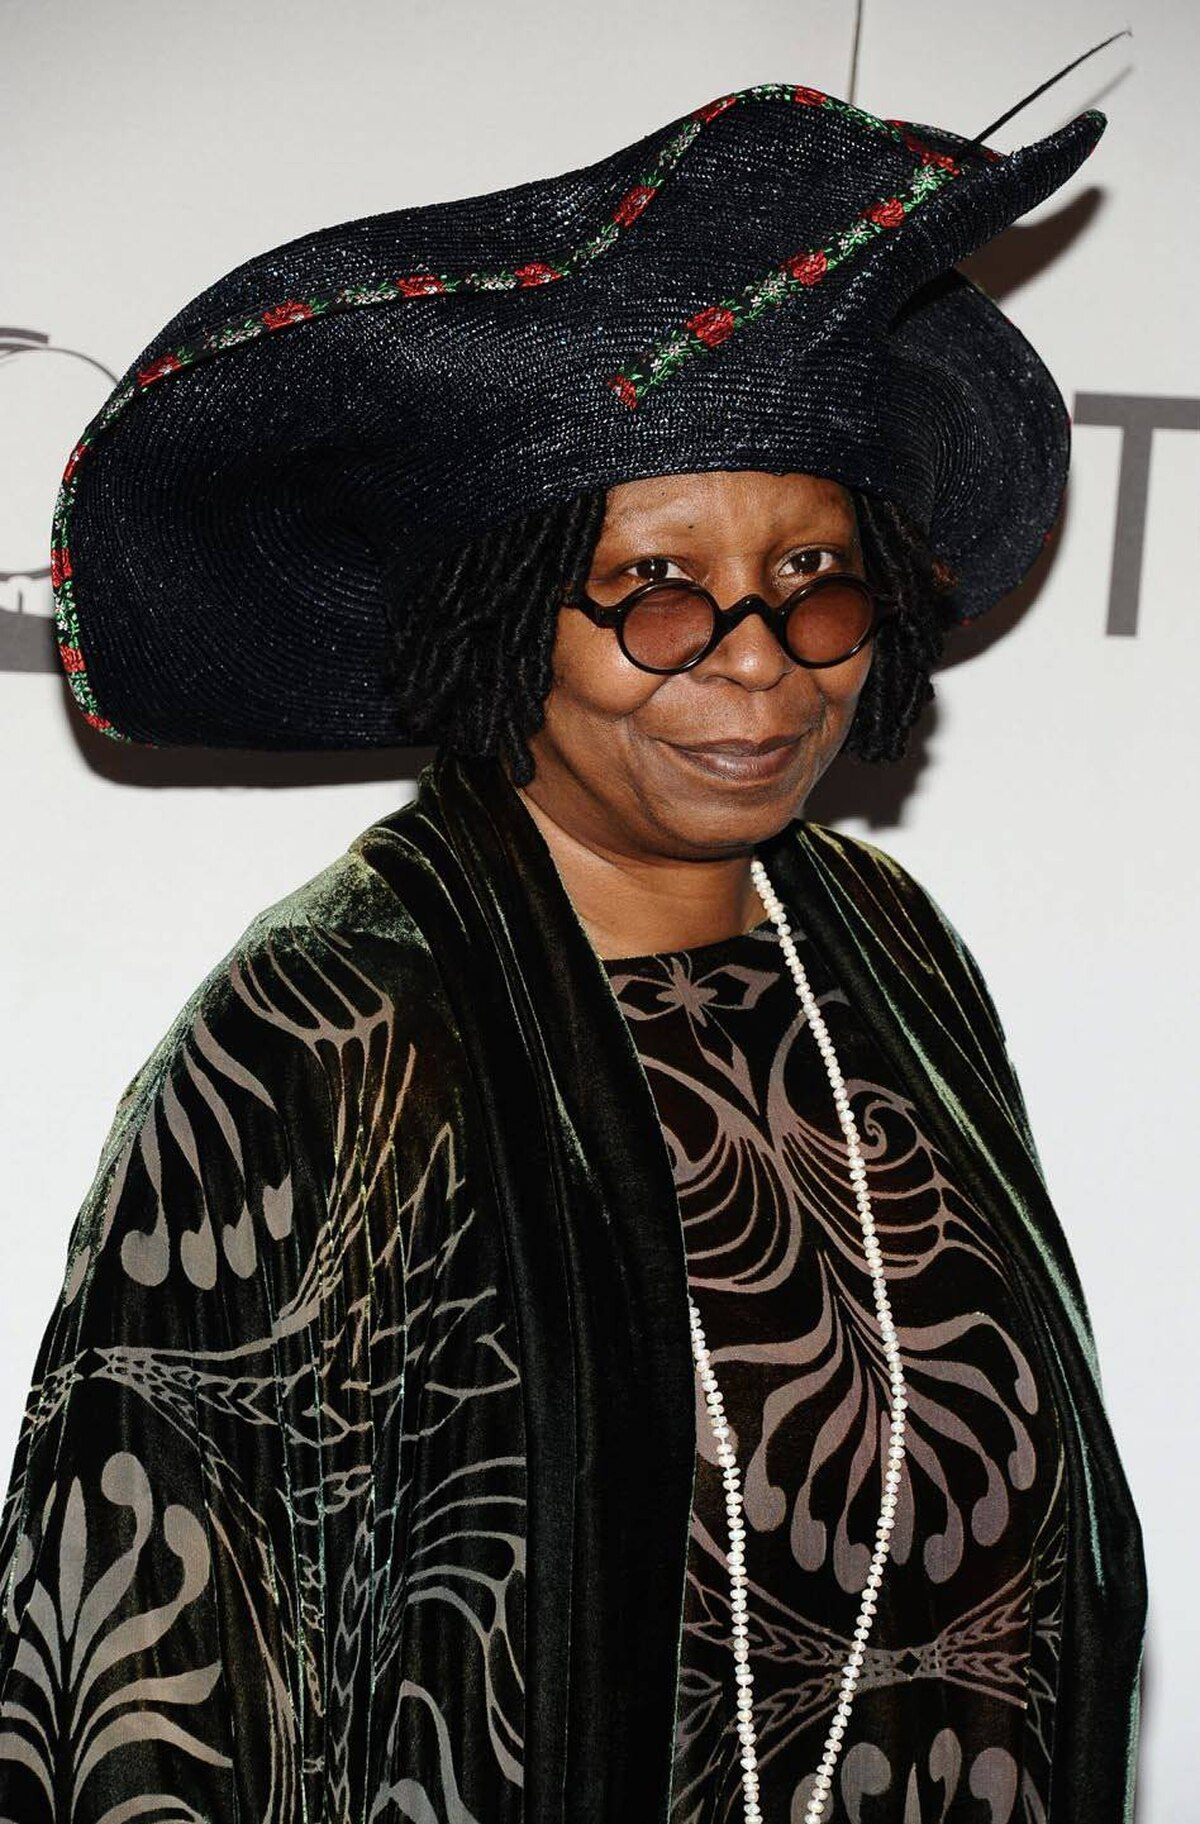 Whoopi Goldberg arrives at the 65th annual Tony Awards, Sunday, June 12, 2011 in New York.